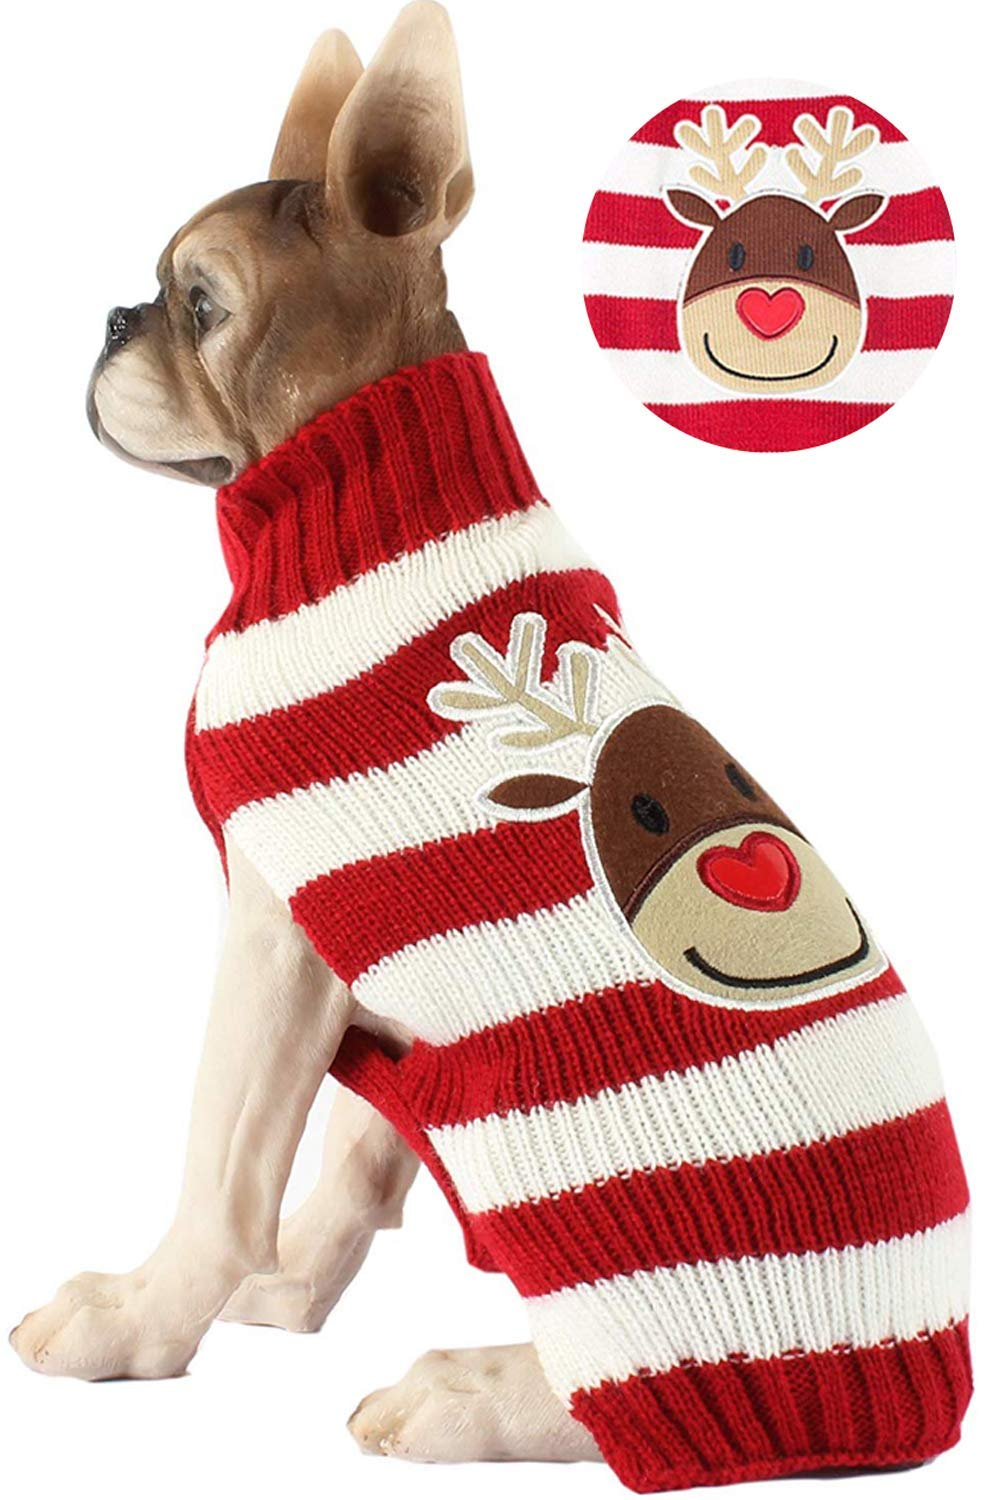 Huizhirem Koeutacue Classic Red Reindeer Christmas Dog Sweater for Puppy and Kitten Cats,Necessary Christmas pet Outfit,Dog Accessorries,Dog Apparel (Reindeer-L)